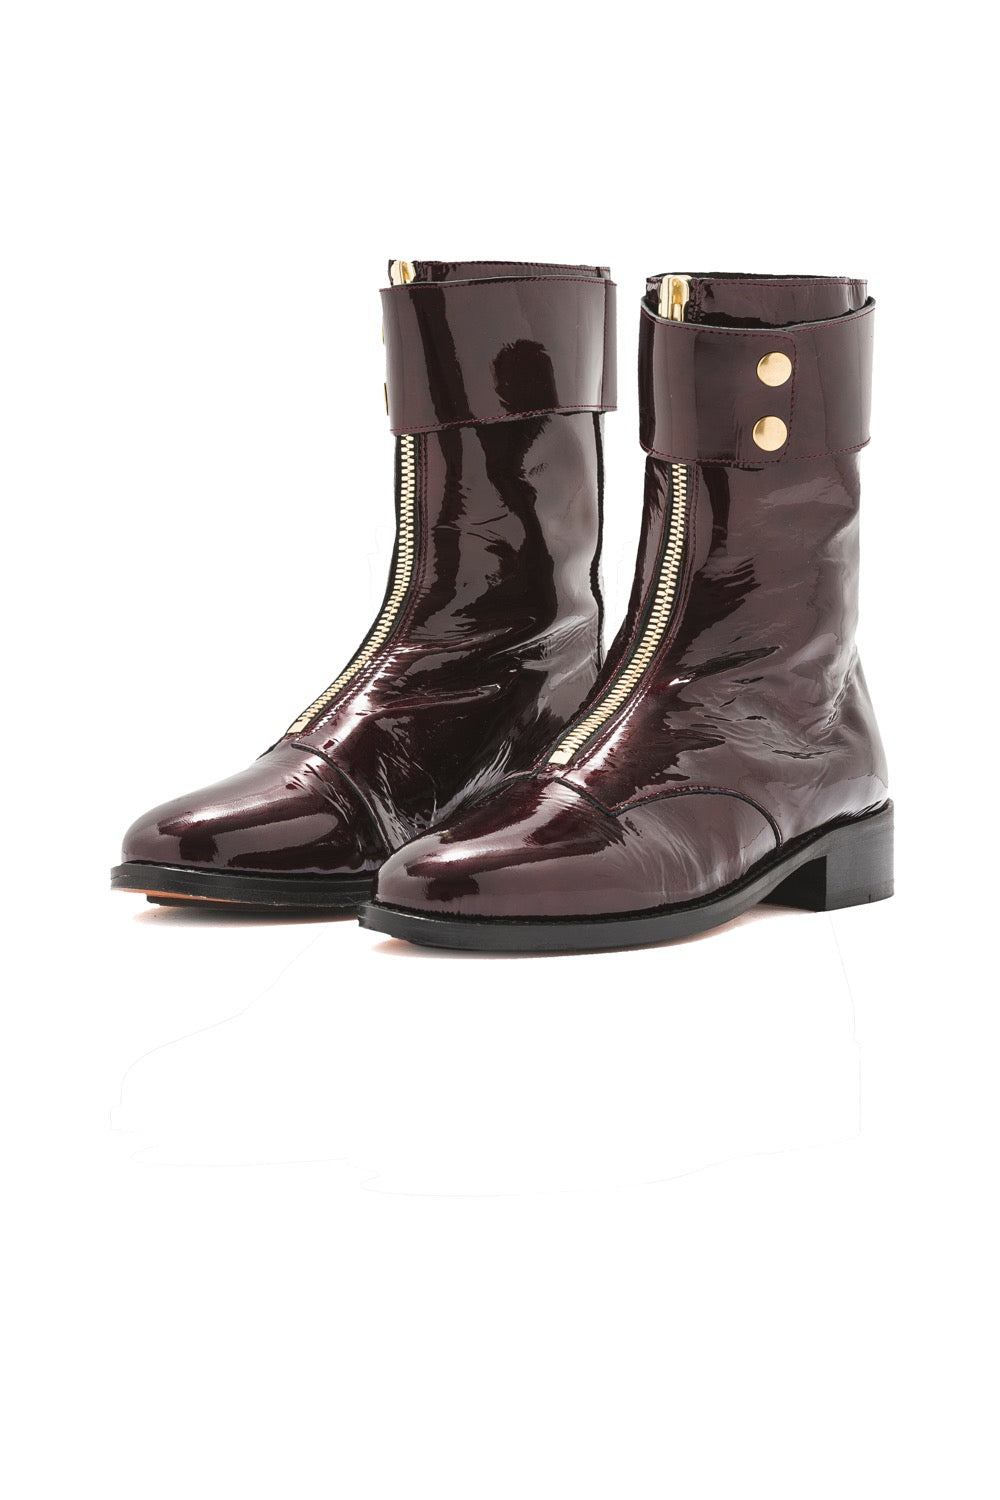 Woodstock ranger boots in burgundy leather